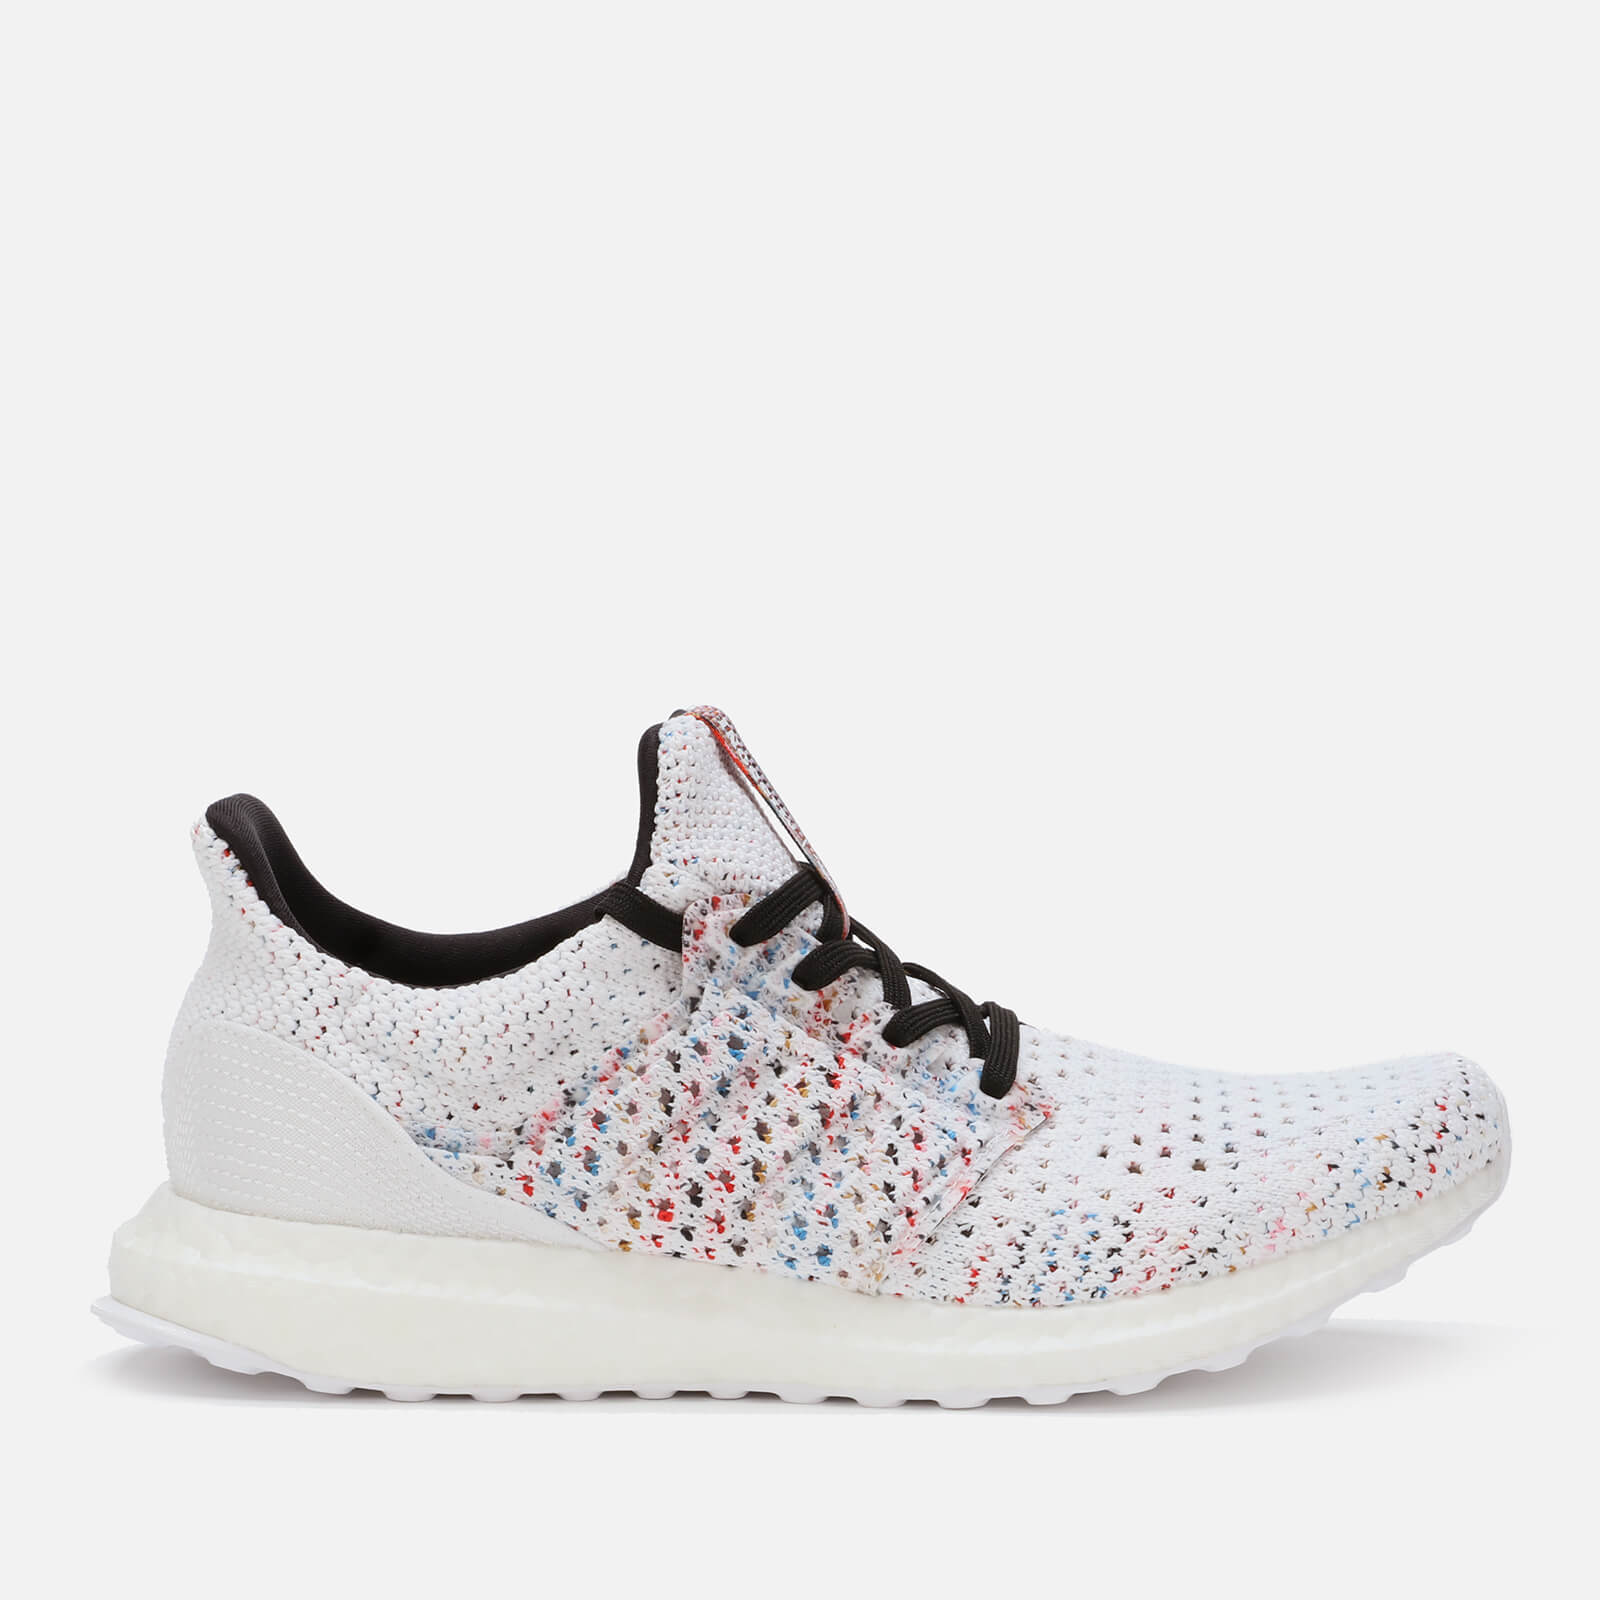 f4072d811bbb0 adidas X Missoni Ultraboost Clima Trainers - FTWR White Active Red ...